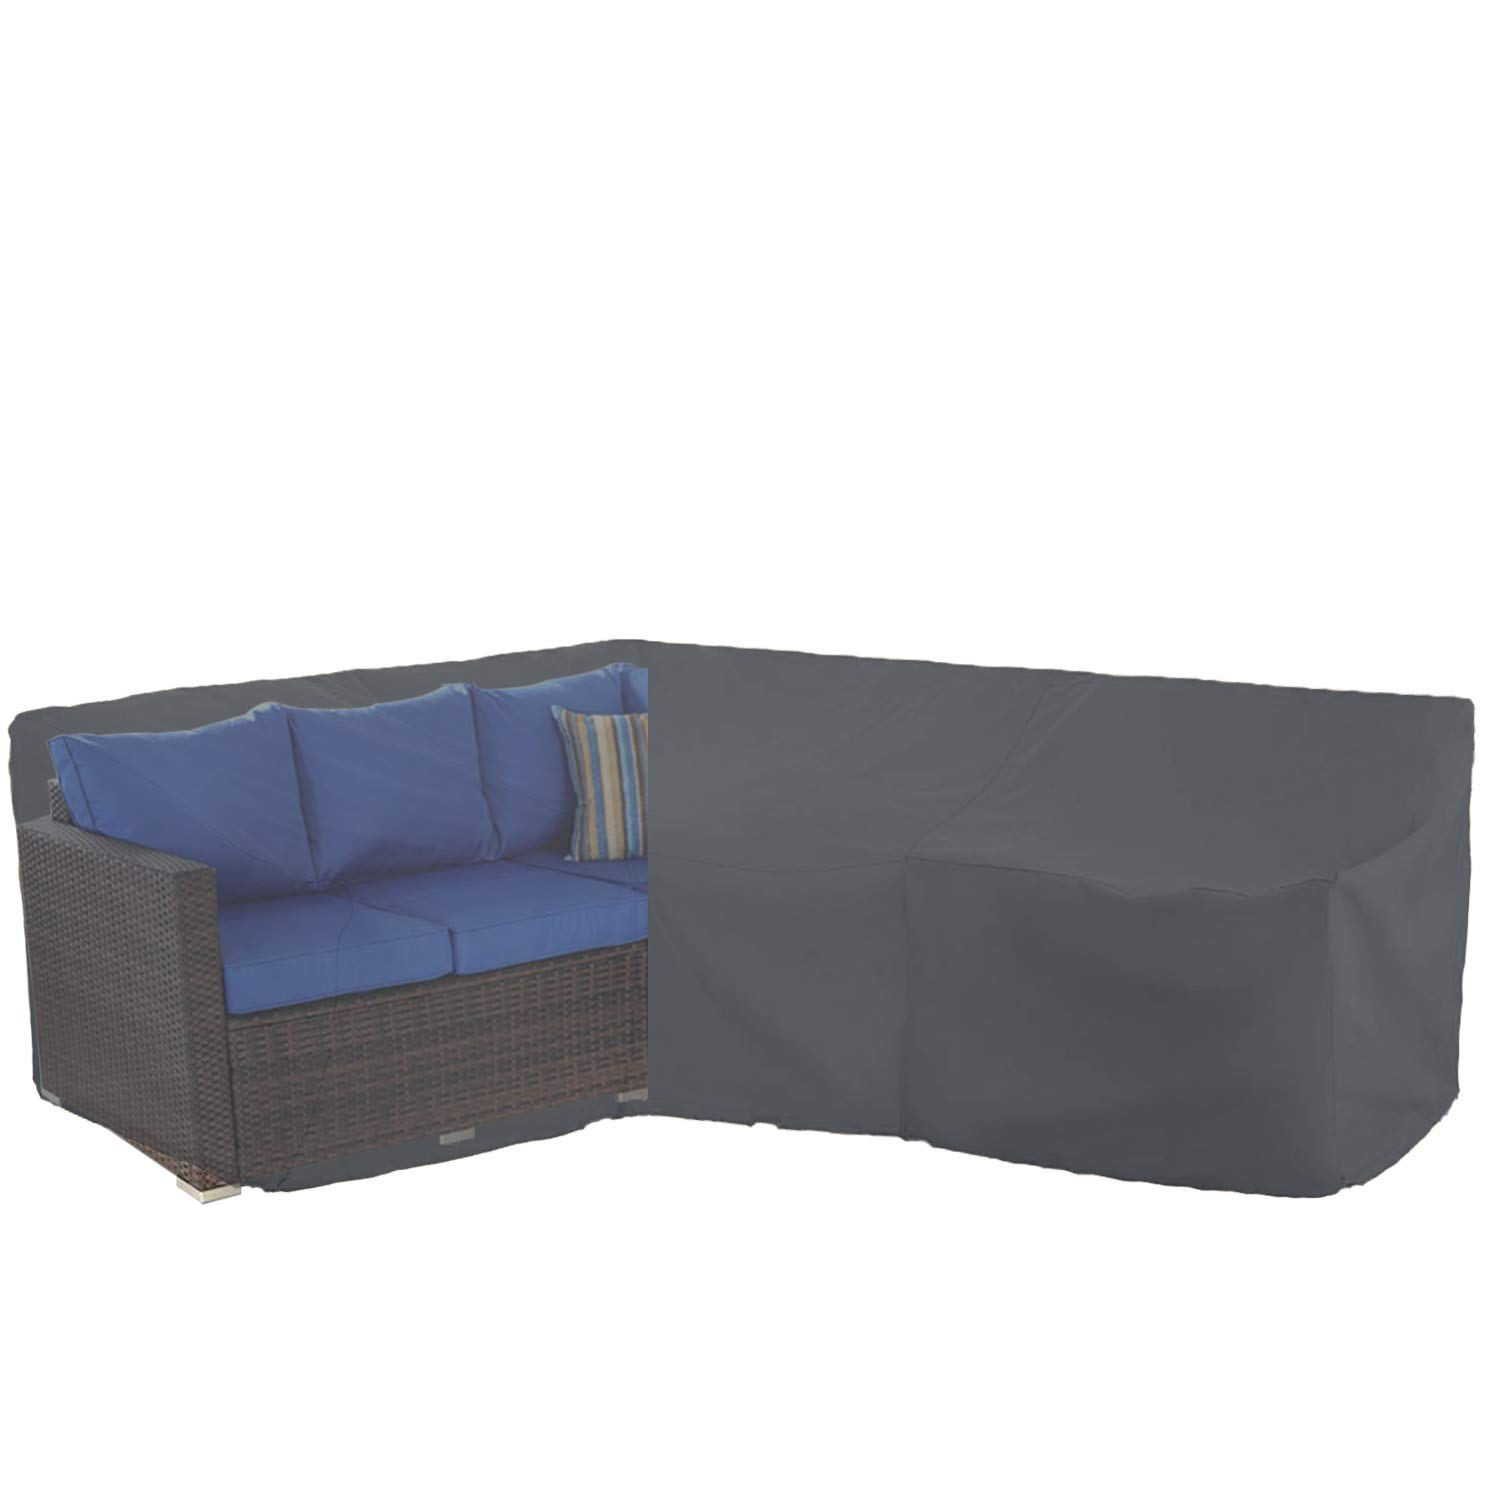 KATEIHOME Patio Furniture Sectional Couch Covers Durable Premium Outdoor Waterproof V Shaped 100'' L x 33.5'' D x 31'' H All Weather Protection Water Resistant Helpful Air Vent Grey by KATEIHOME